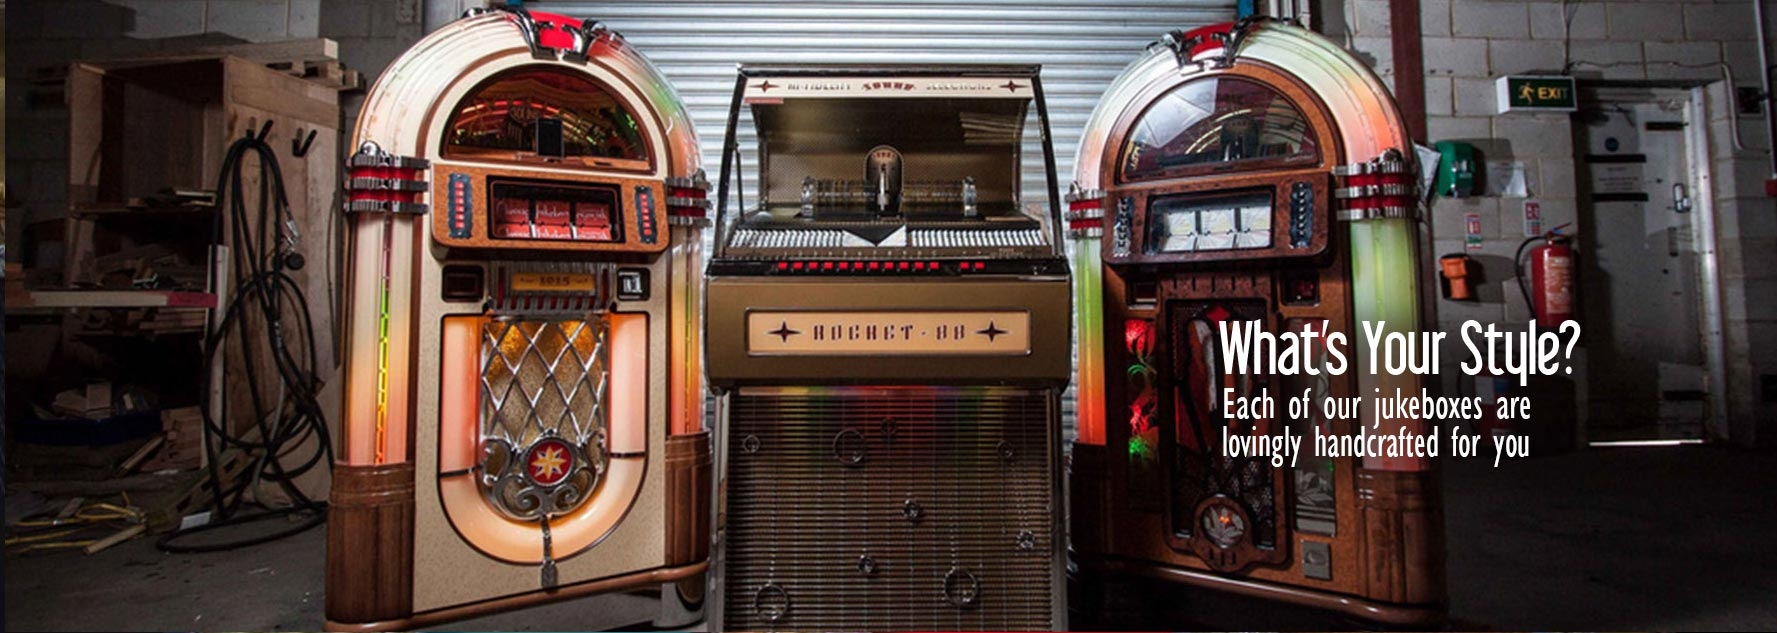 Classic Jukeboxes for Sale in Dubai, UAE - Jukeboxes for